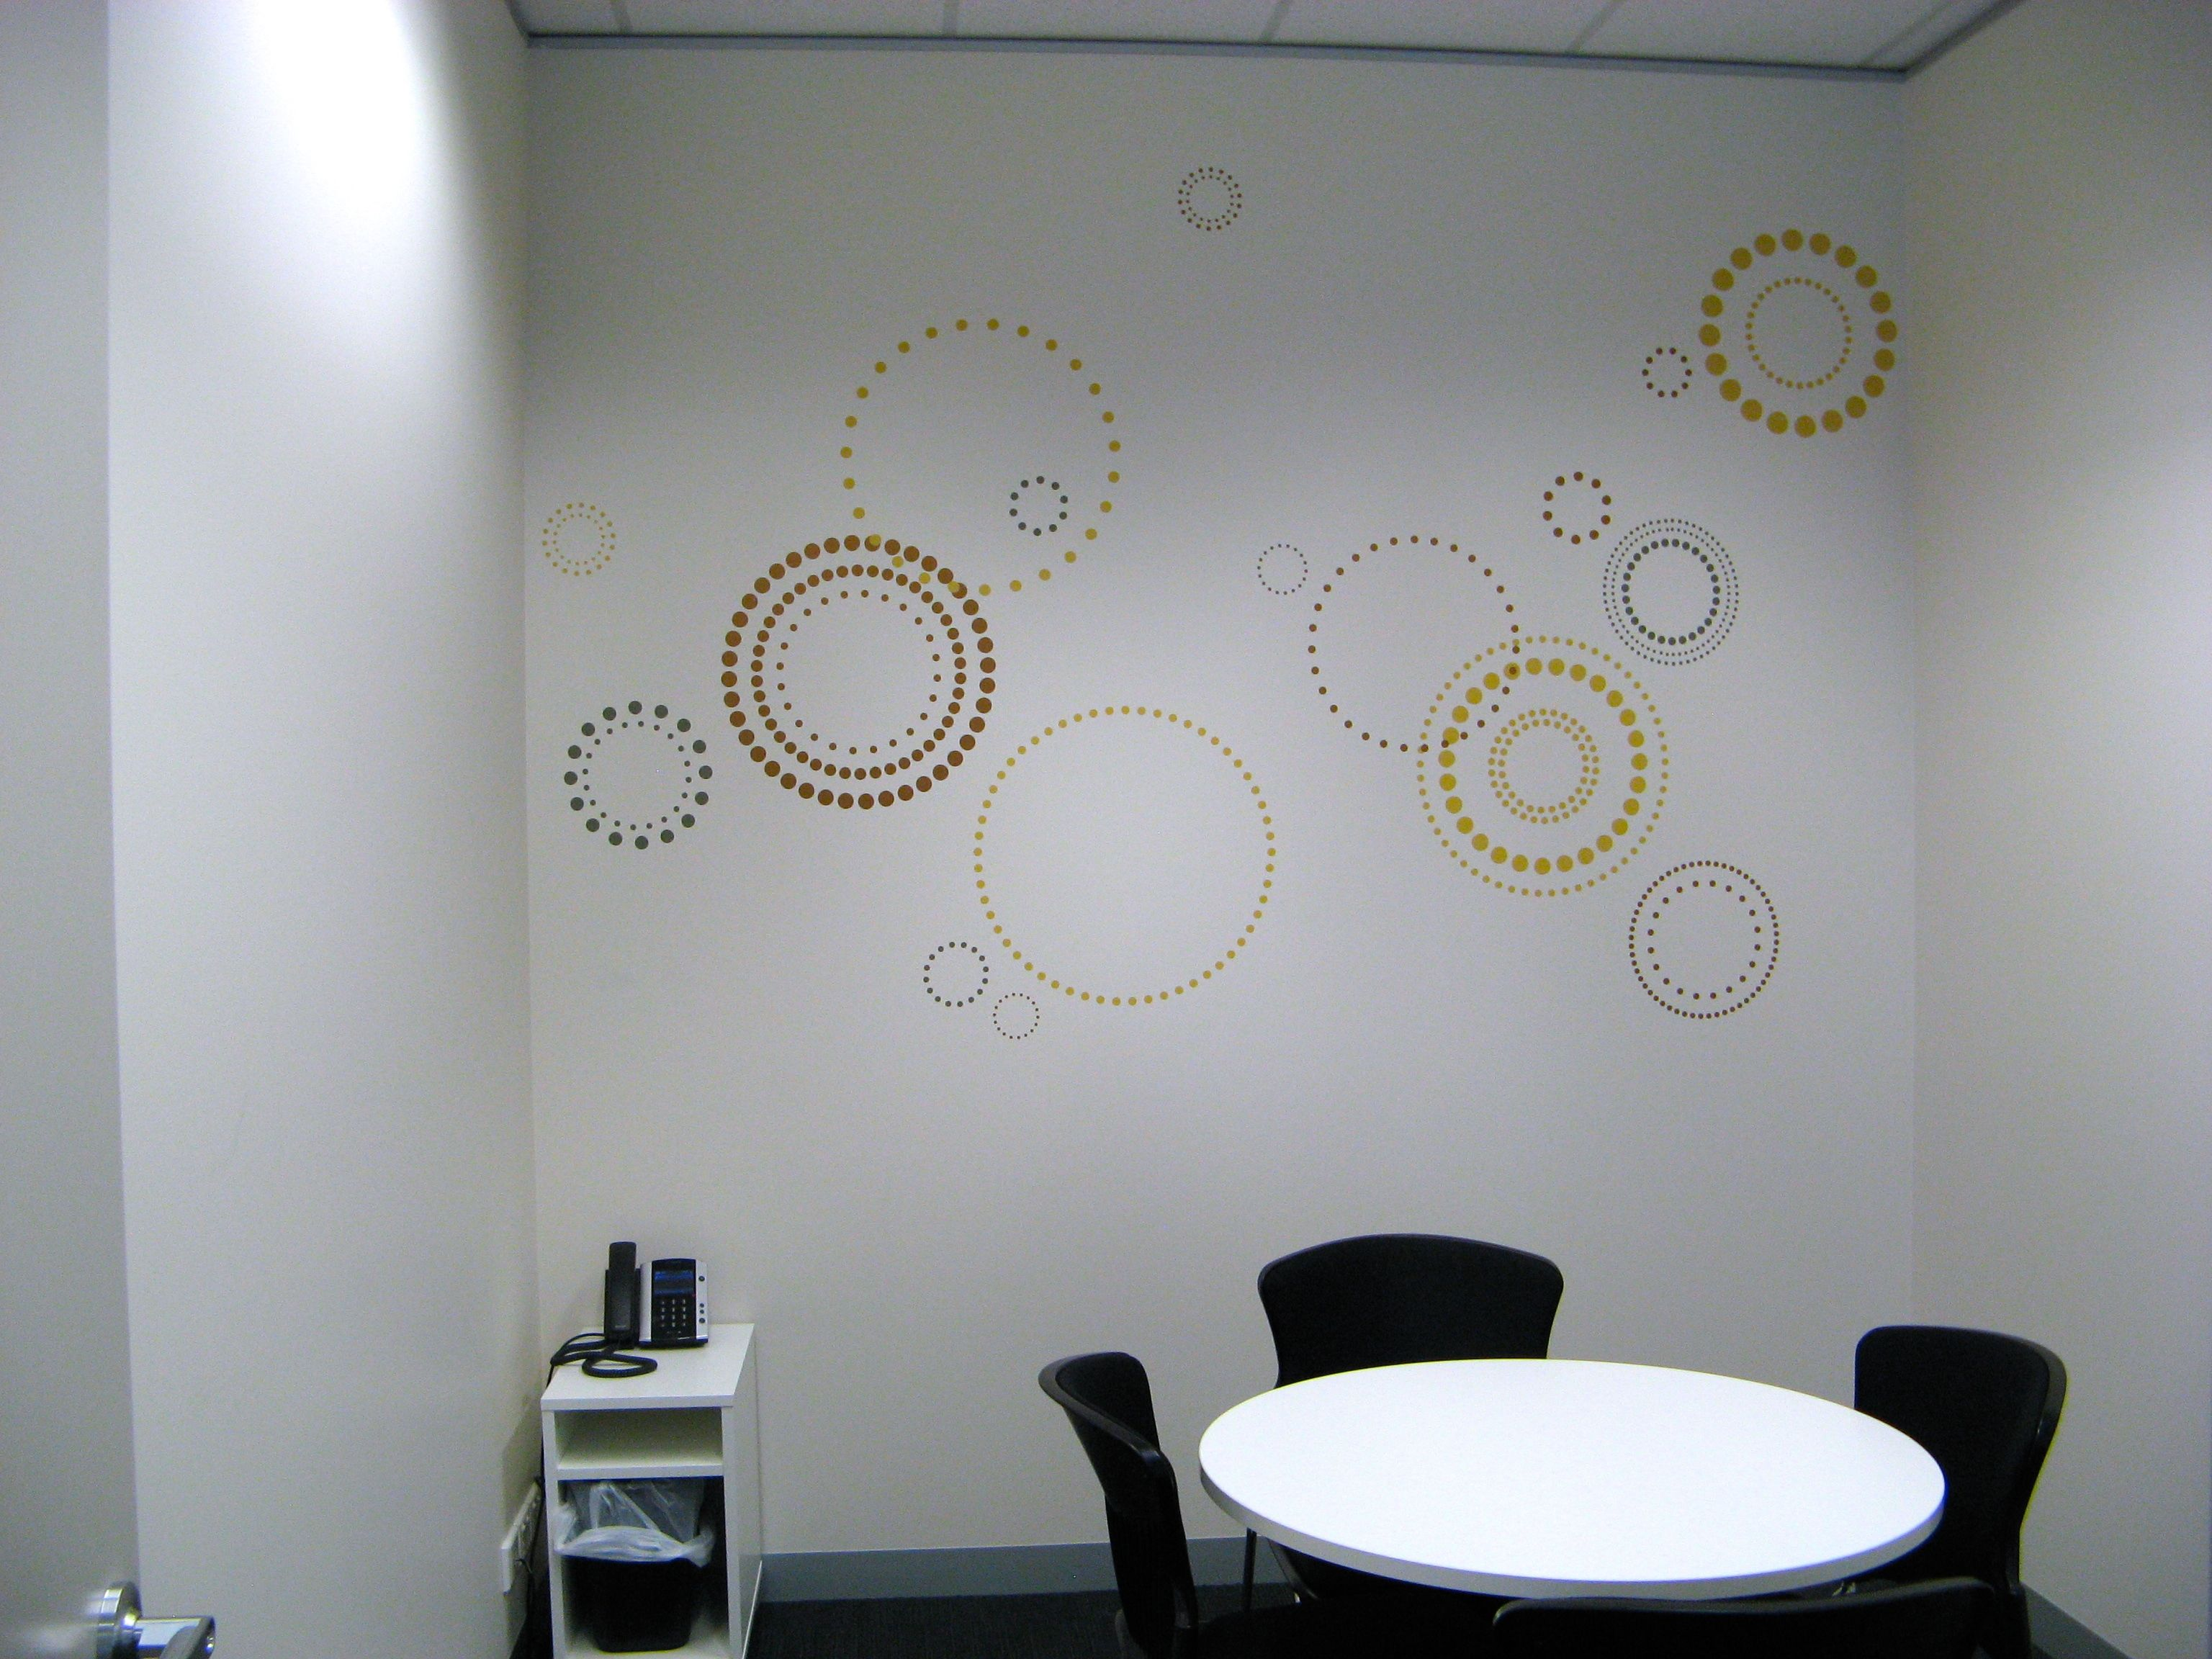 Office wall decals meeting room wall decals Art for office walls